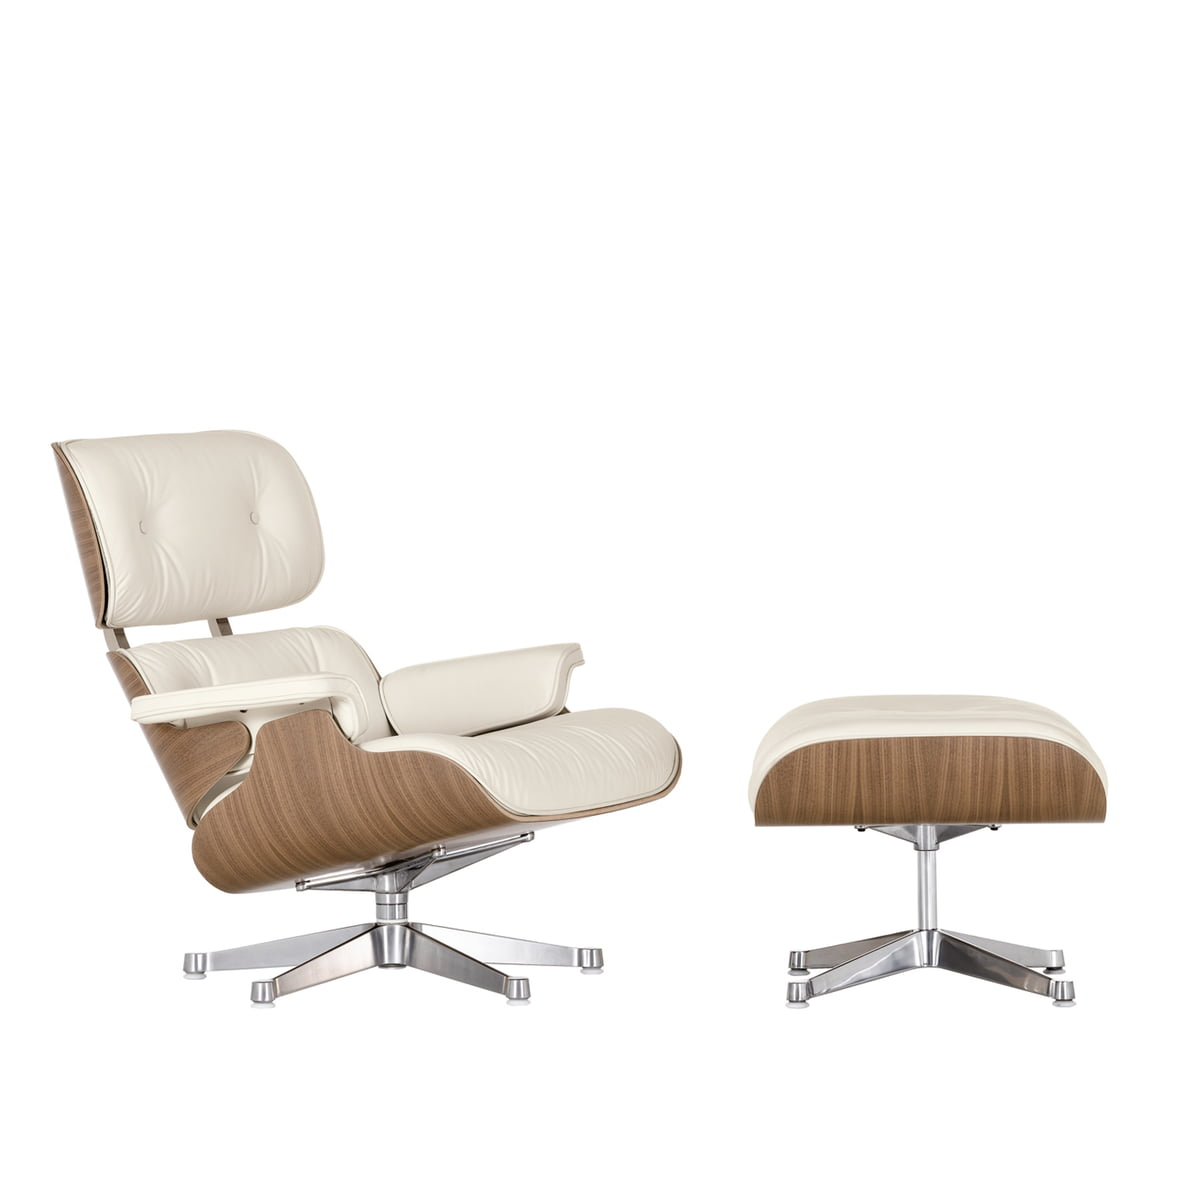 Amazing Vitra Eames Lounge Chair Ottoman White Polished Walnut Classic Machost Co Dining Chair Design Ideas Machostcouk